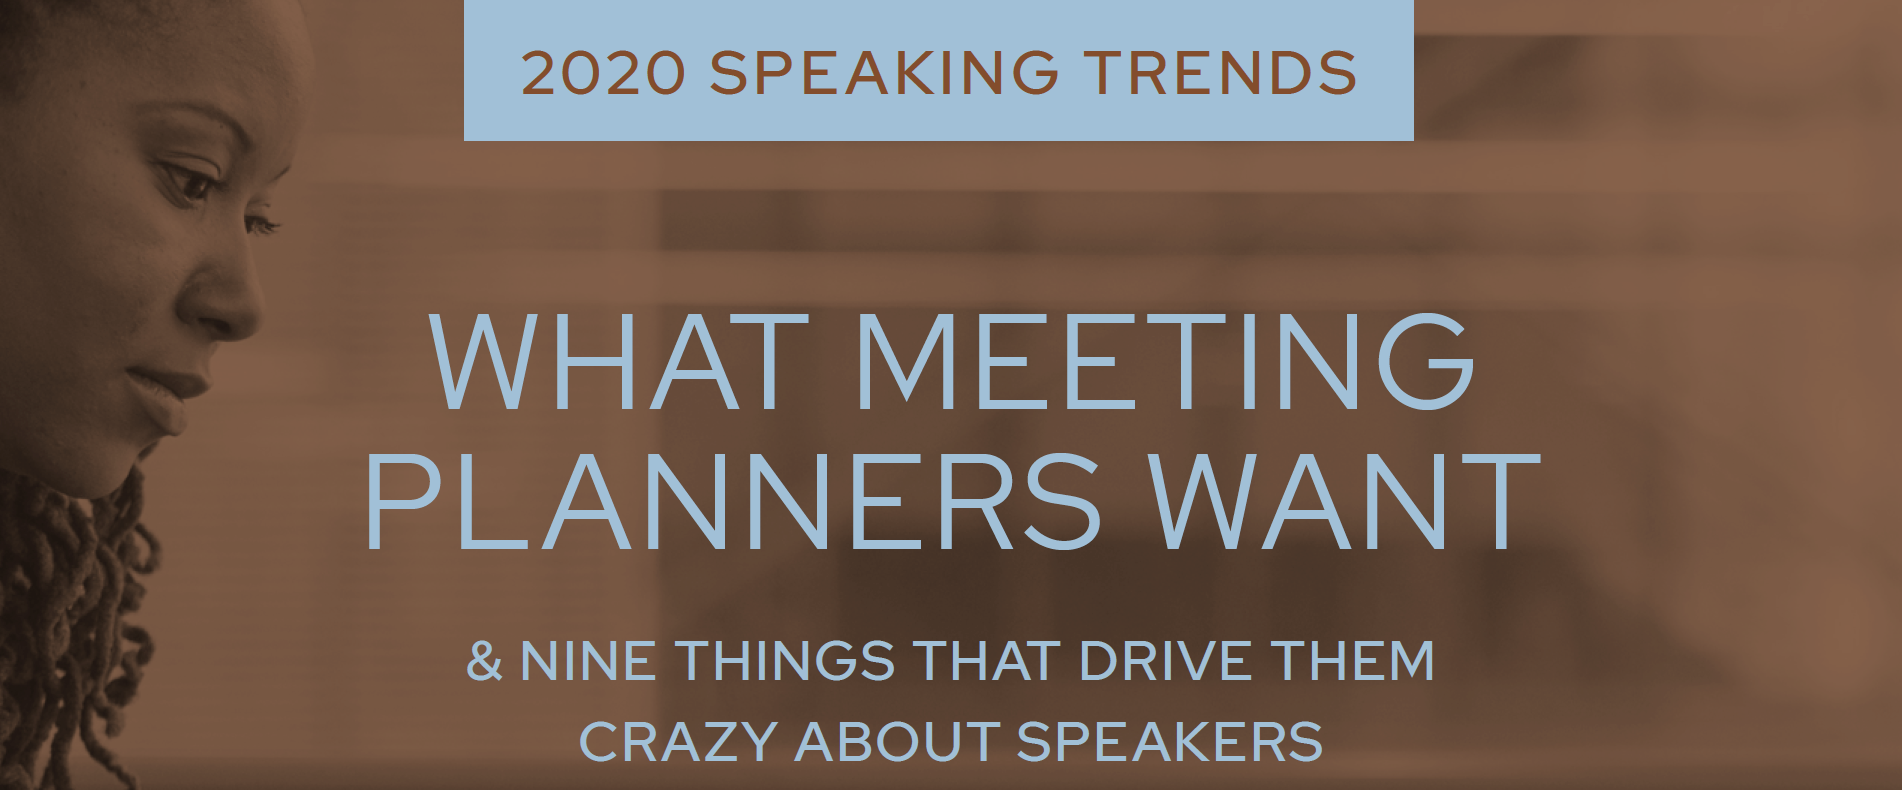 What Meeting Planners Want (and 9 Things that Drive Them Crazy)